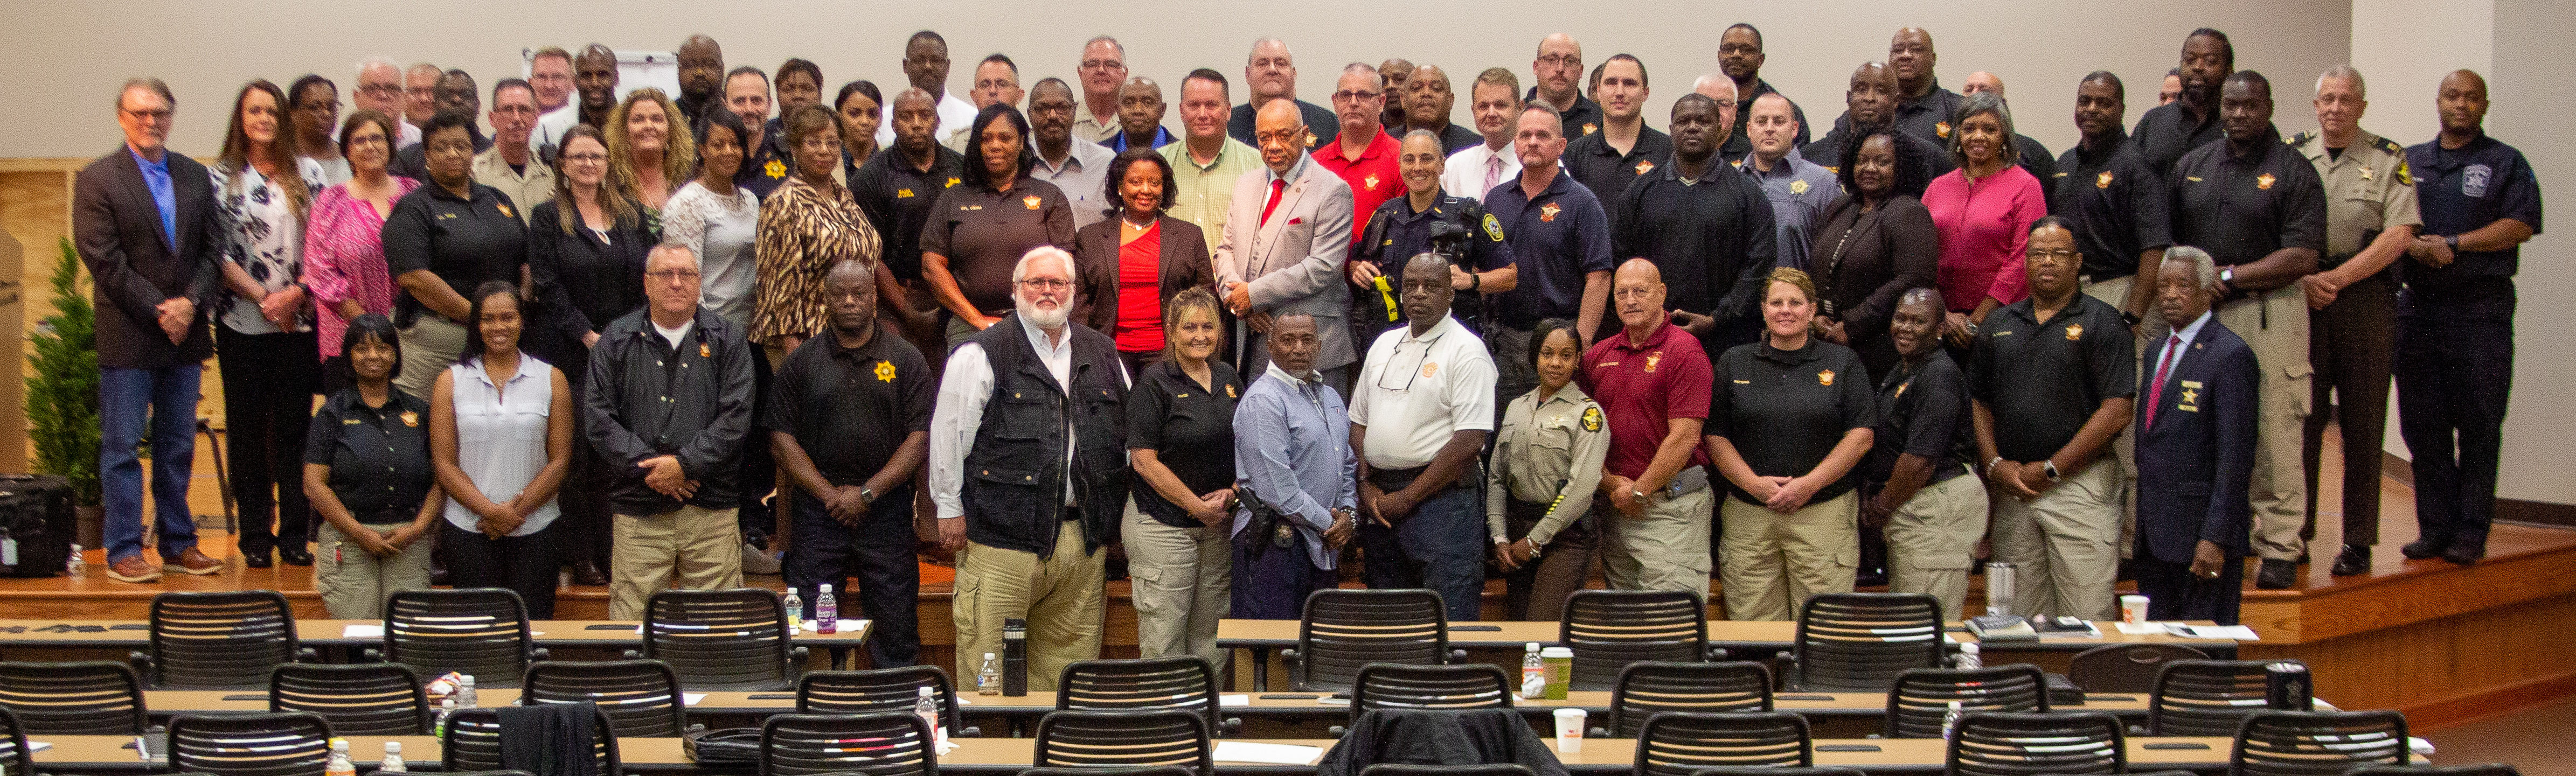 Image of NCSO Leadership Conference 10